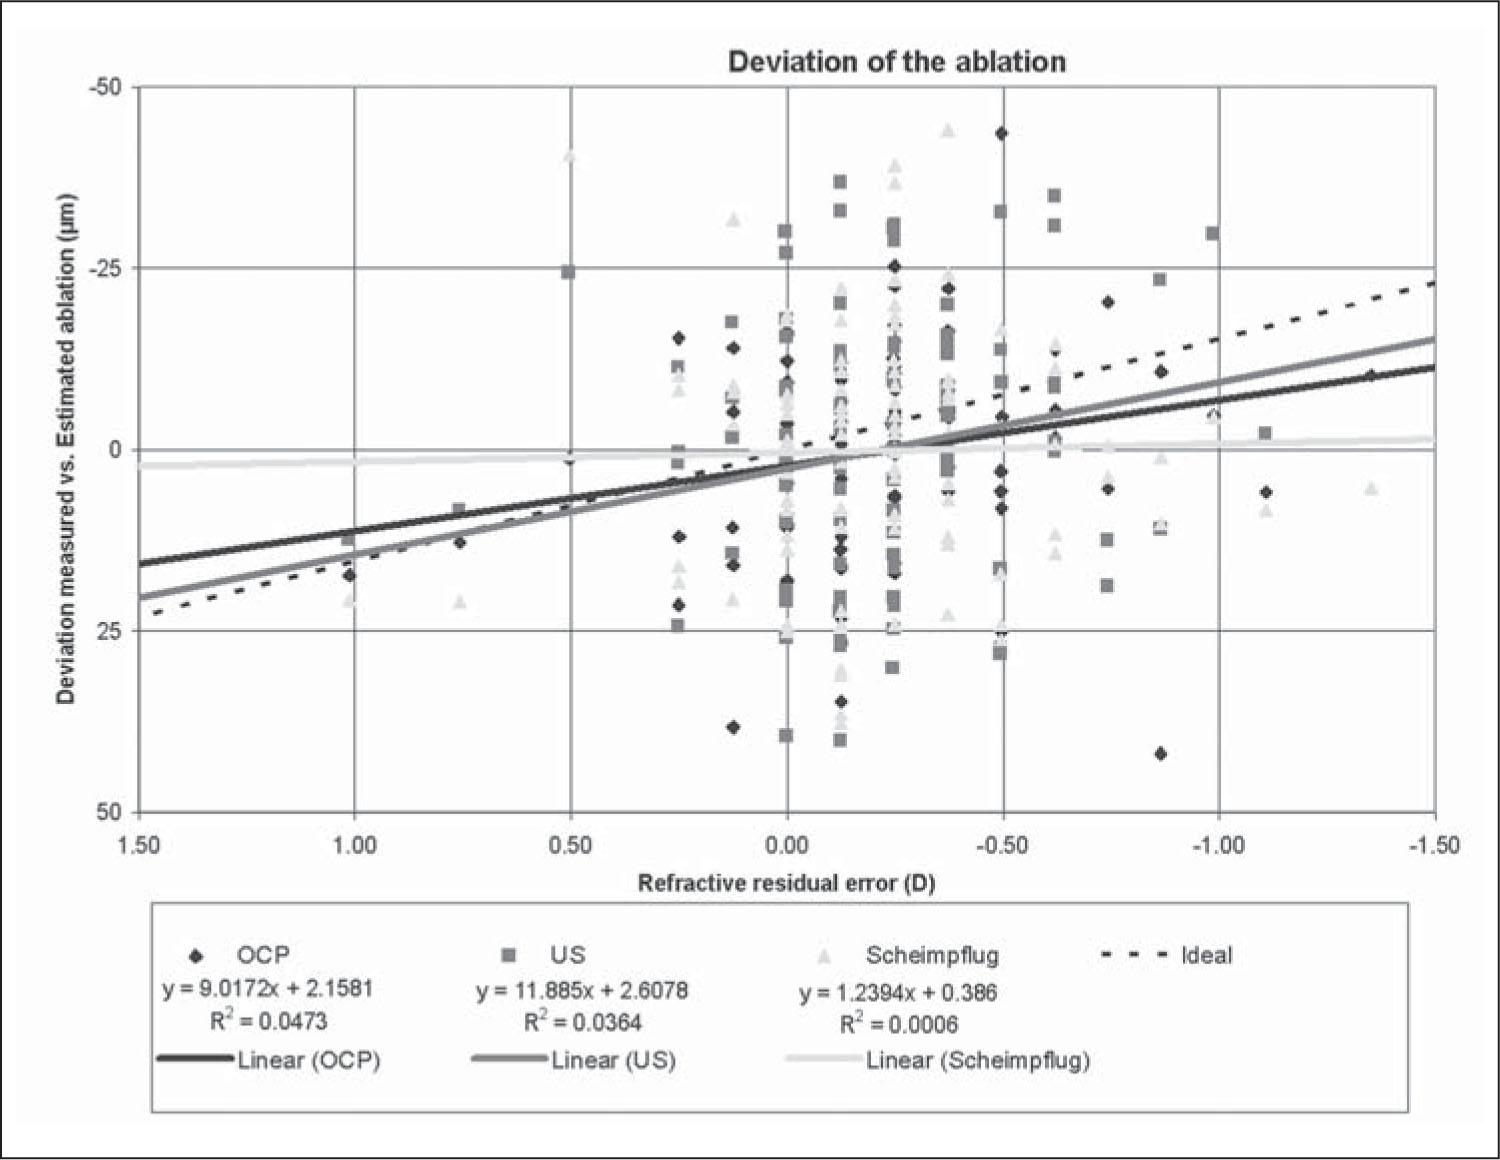 Measured Central Ablation Depth Minus Estimated Central Ablation Depth Versus Residual Manifest Refraction Spherical Equivalent at 3 Months Postoperatively for Scheimpflug, Optical Coherence Pachymetry (OCP), and Ultrasound Pachymetry Measurements. Calculated Absolute Pachymetry Deviations Between Measured and Estimated Central Ablation Depth Compared to the Absolute Refractive Deviations Showed No Correlation for the Scheimpflug Method (P=.80), a Borderline Correlation for Ultrasound Measurements (P=.06), and Significant Correlation for OCP (P=.03).